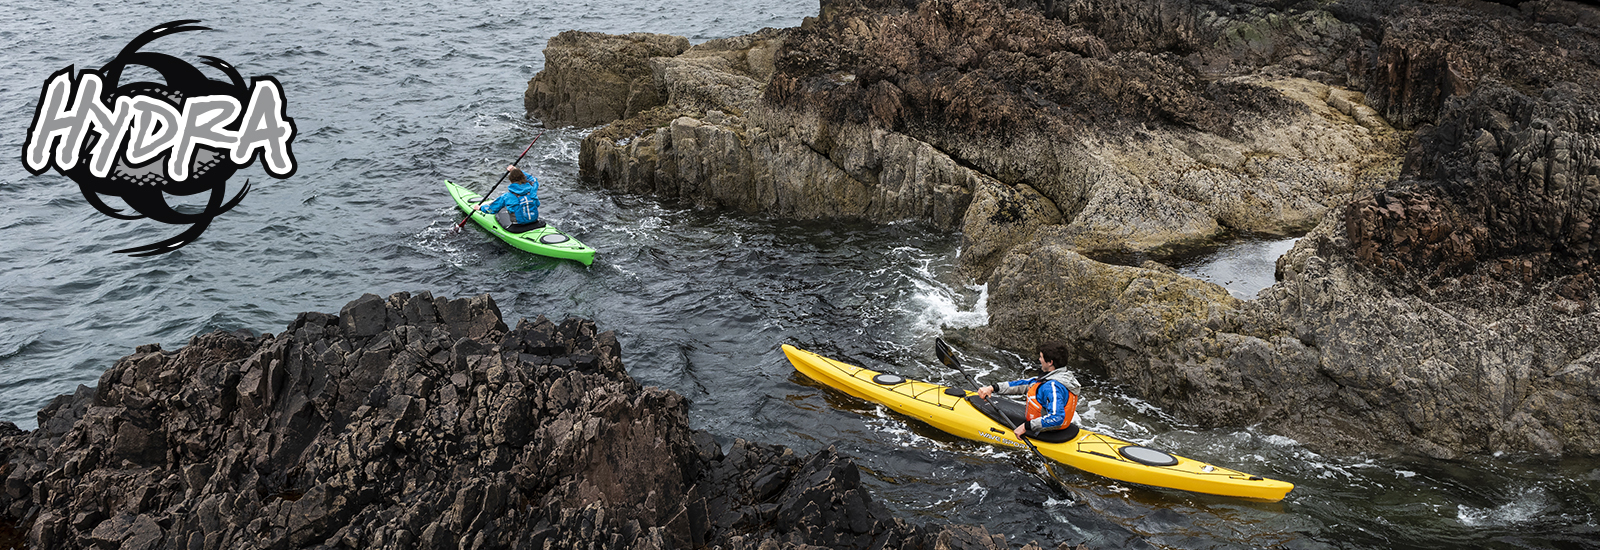 kayakers using hydra kayaks